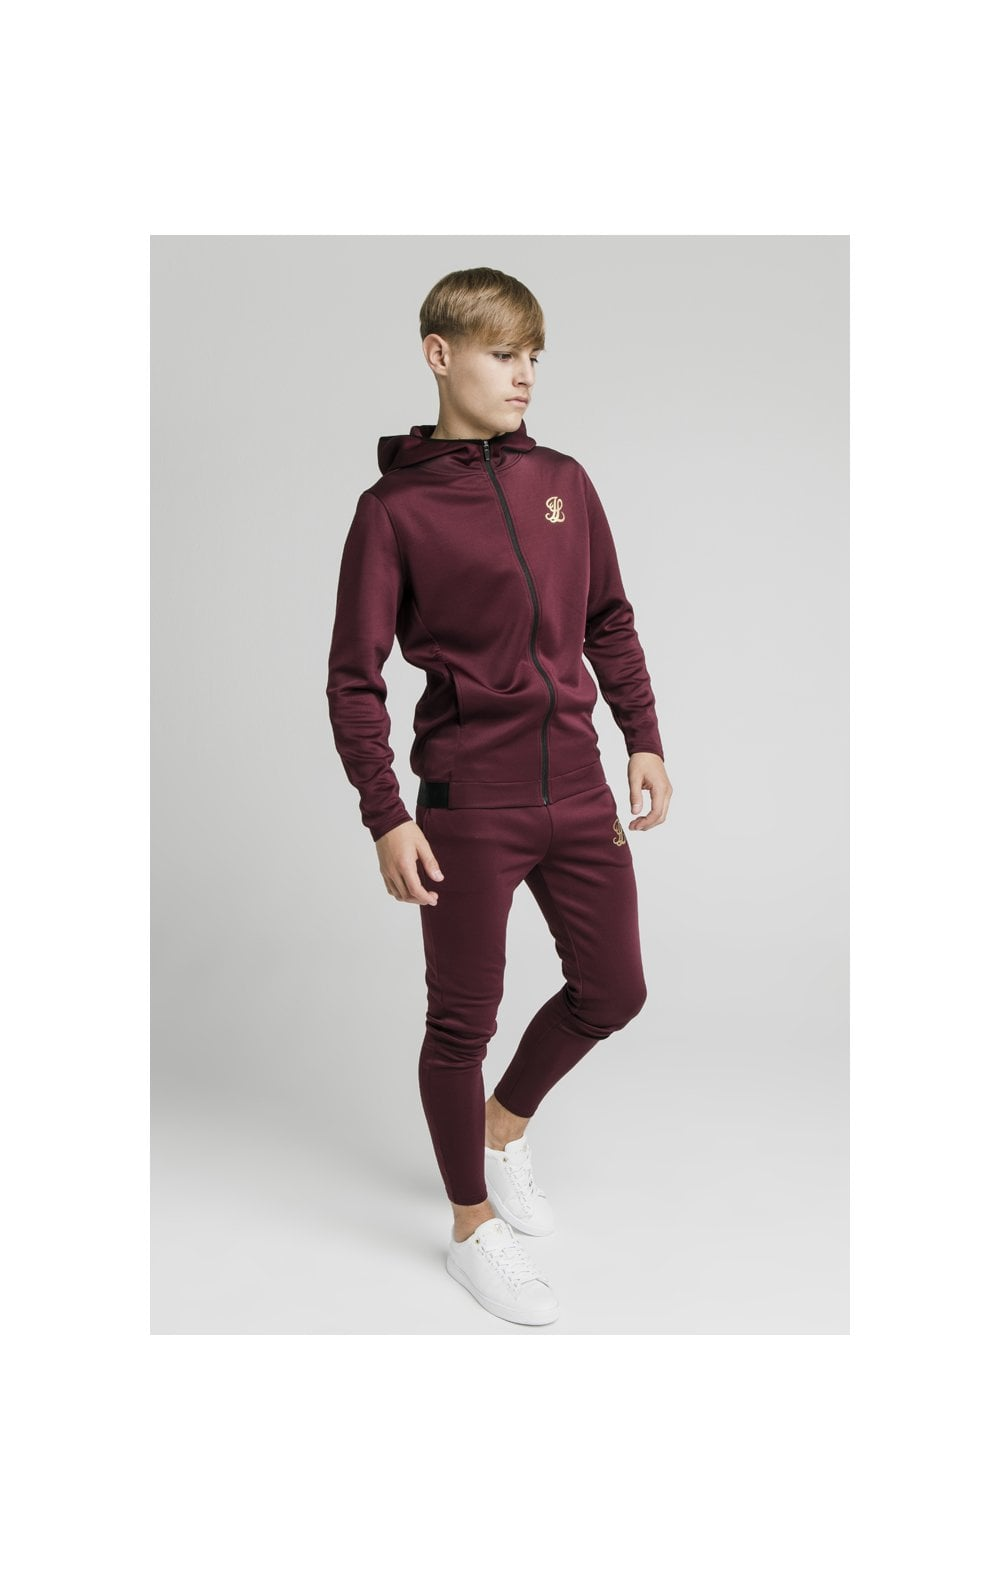 Illusive London Agility Zip Through Hoodie - Burgundy (5)